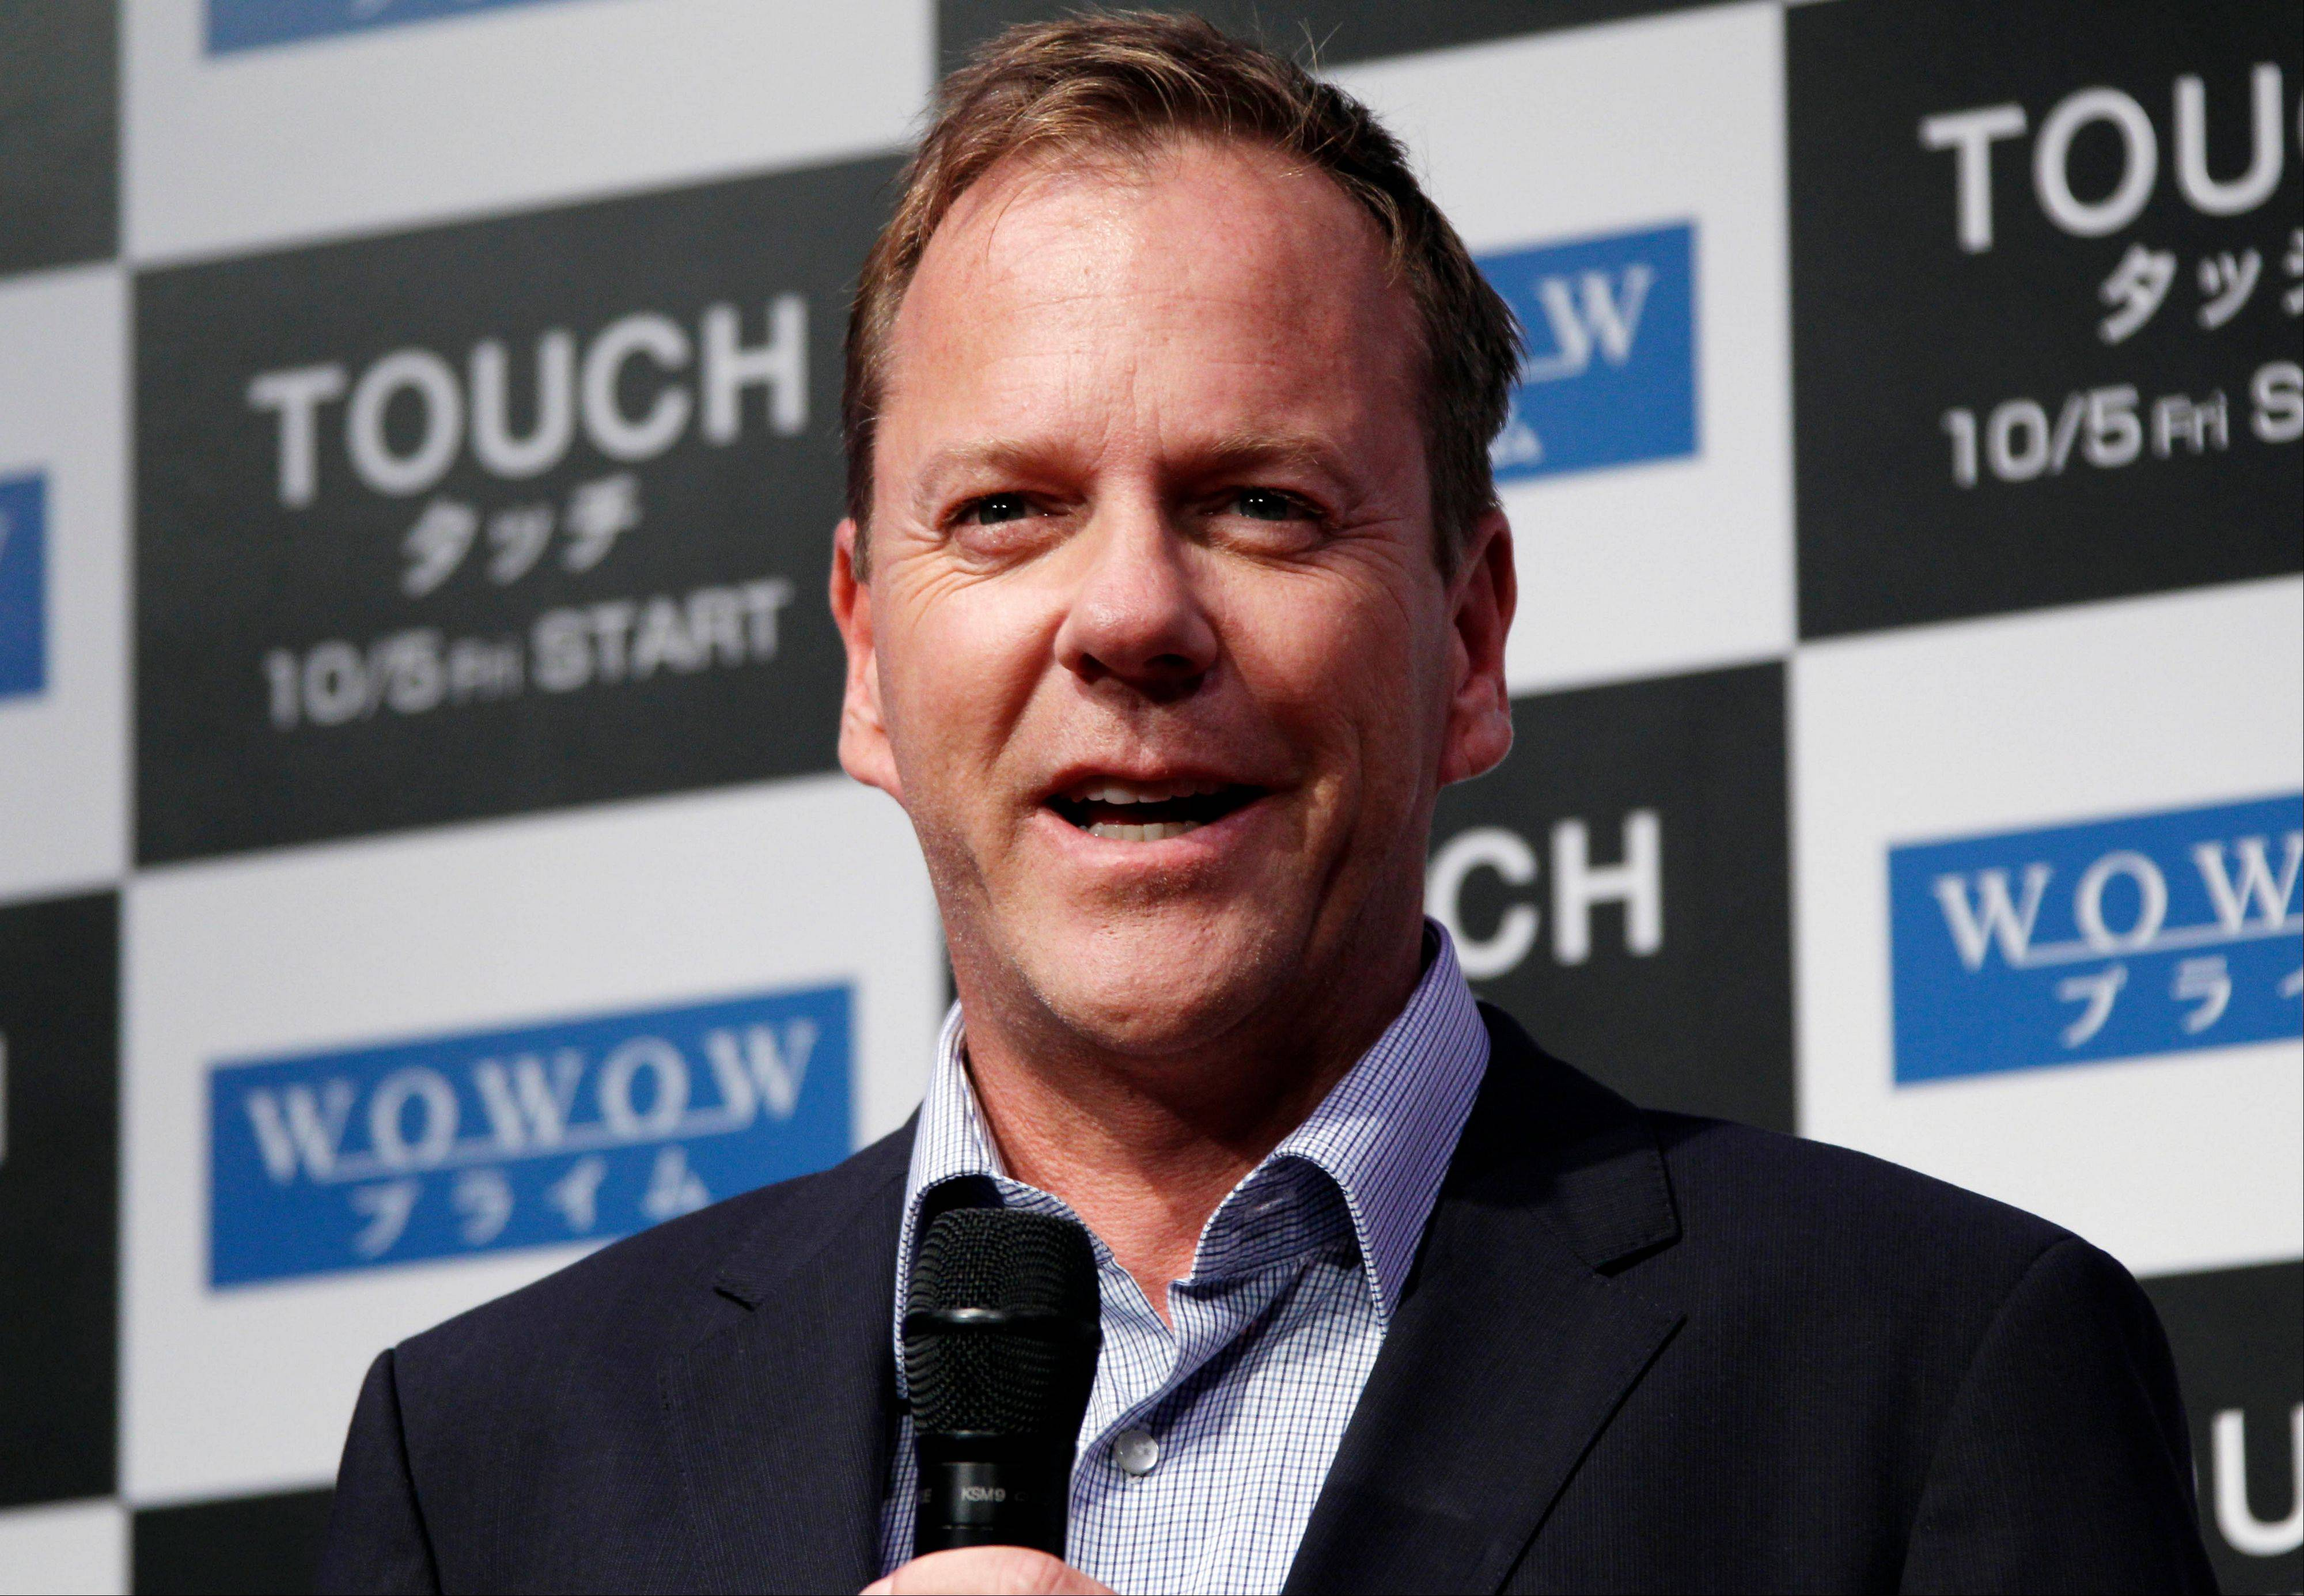 Kiefer Sutherland has been named Man of the Year by Harvard University�s Hasty Pudding Theatricals. Sutherland will be roasted and receive his ceremonial pudding pot at a ceremony on Friday, Feb. 8.